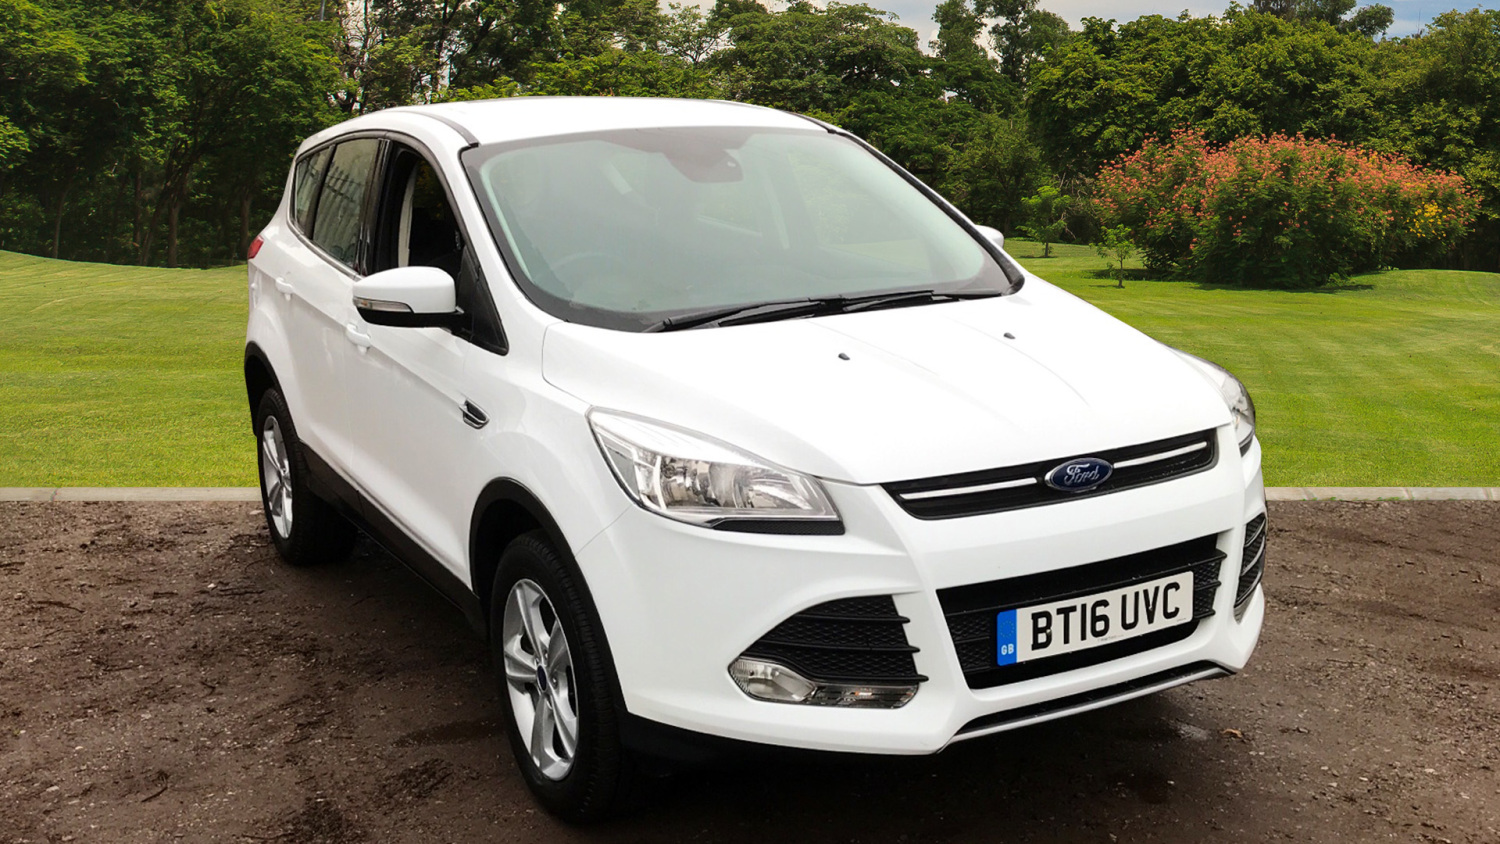 used ford kuga 1 5 ecoboost 182 zetec nav 5dr auto petrol estate for sale bristol street motors. Black Bedroom Furniture Sets. Home Design Ideas